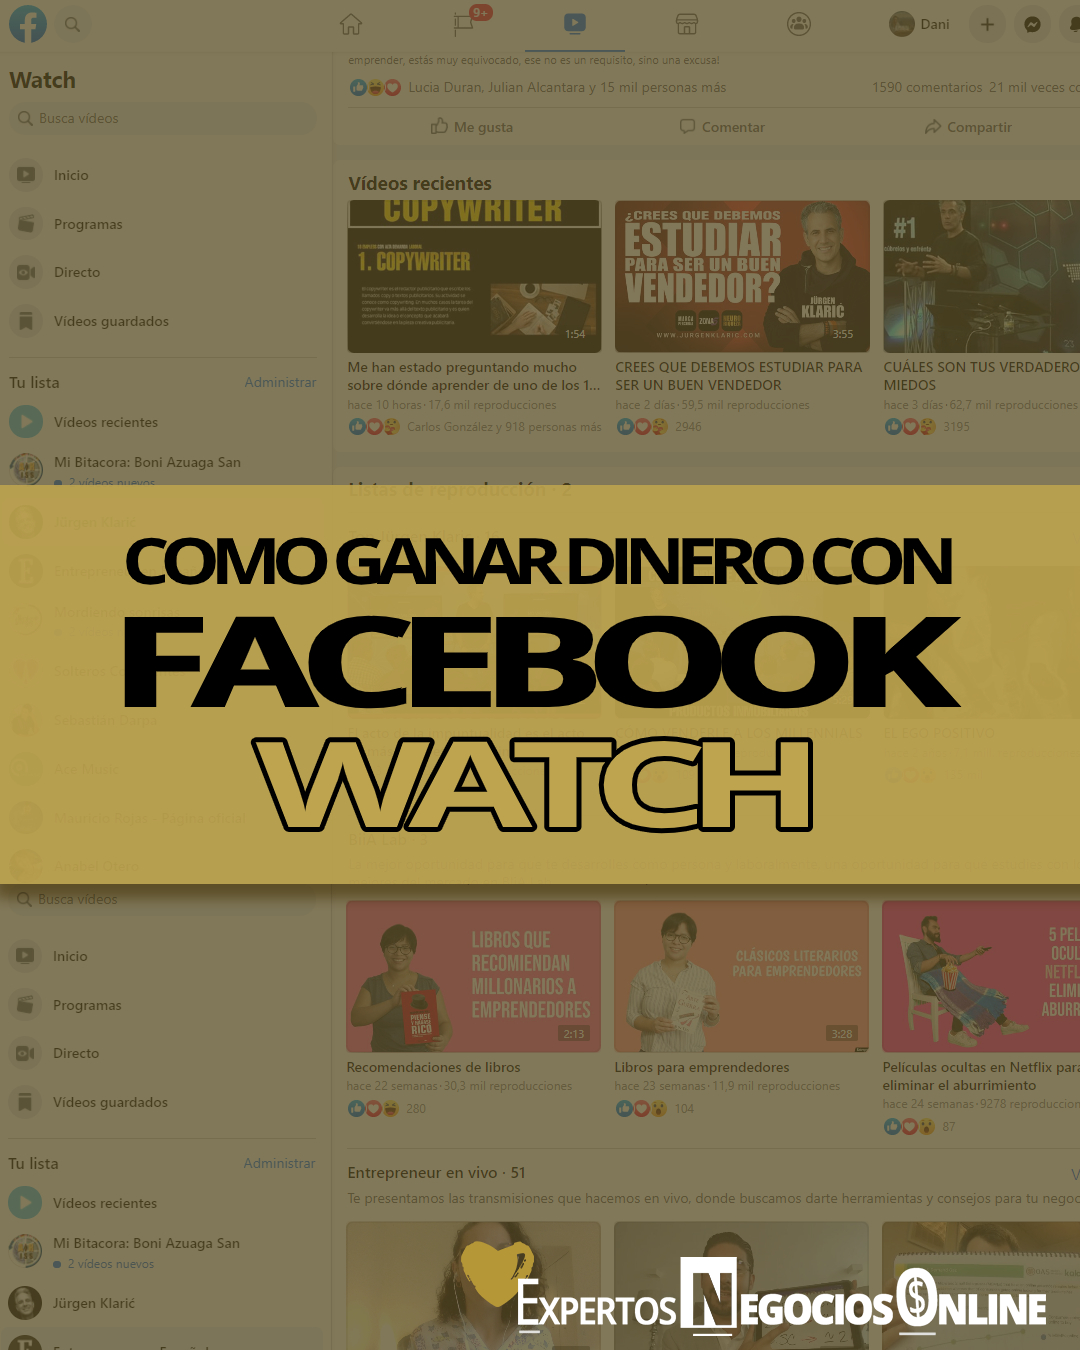 cómo ganar dinero con Facebook Watch - monetizar FB Watch